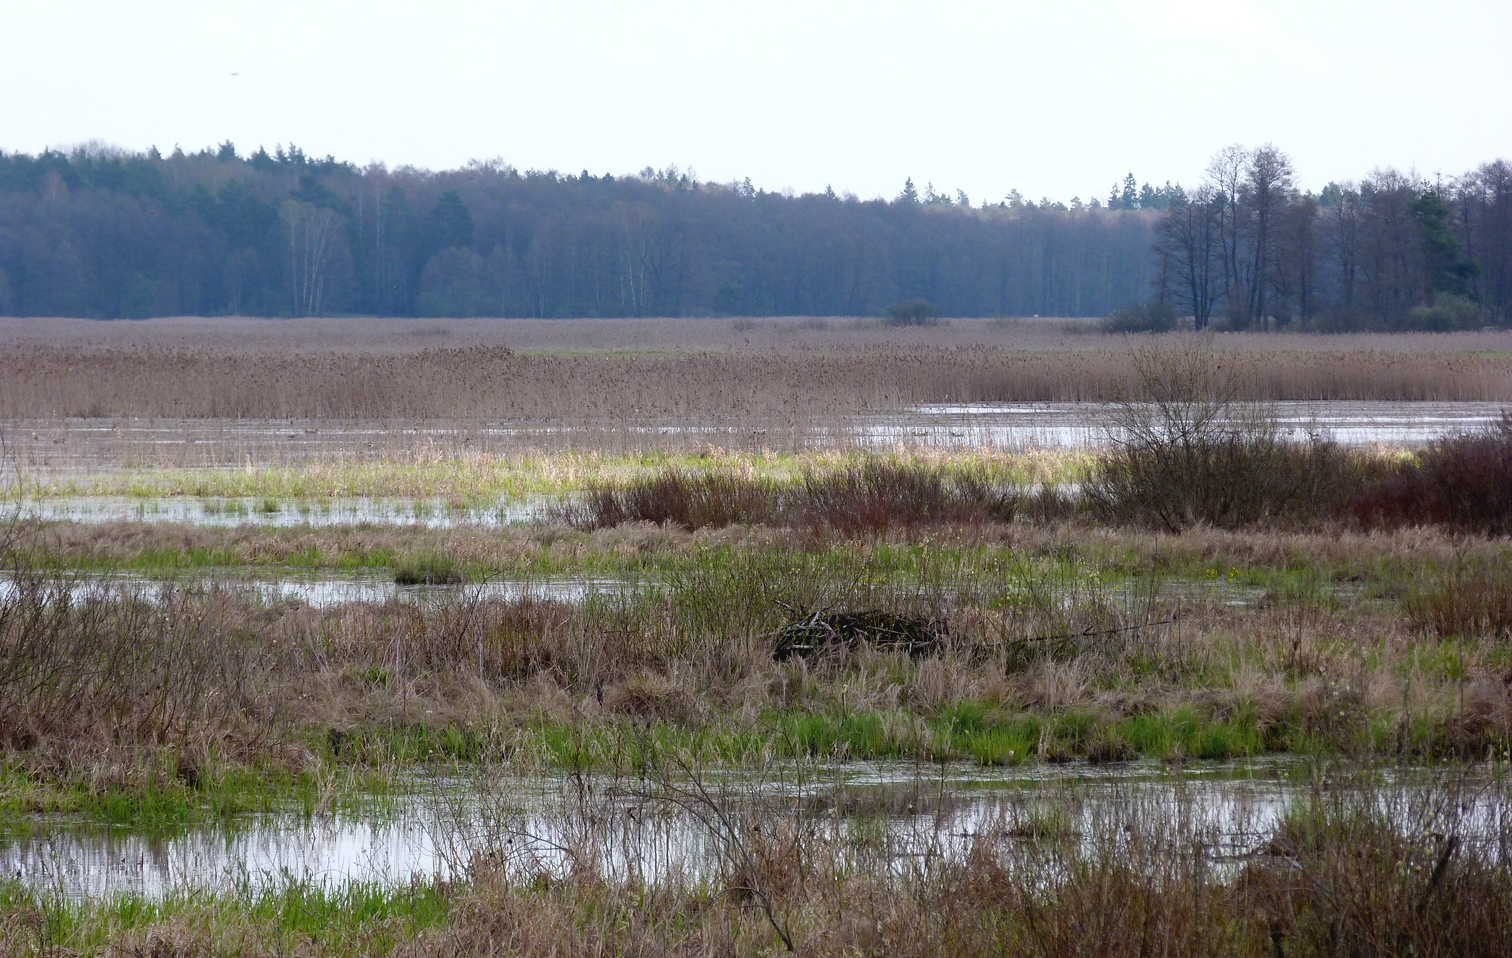 Siemianowka Reservoir is half-covered in reedbeds and full of birds. The most distant trees here are probably in Belarus.